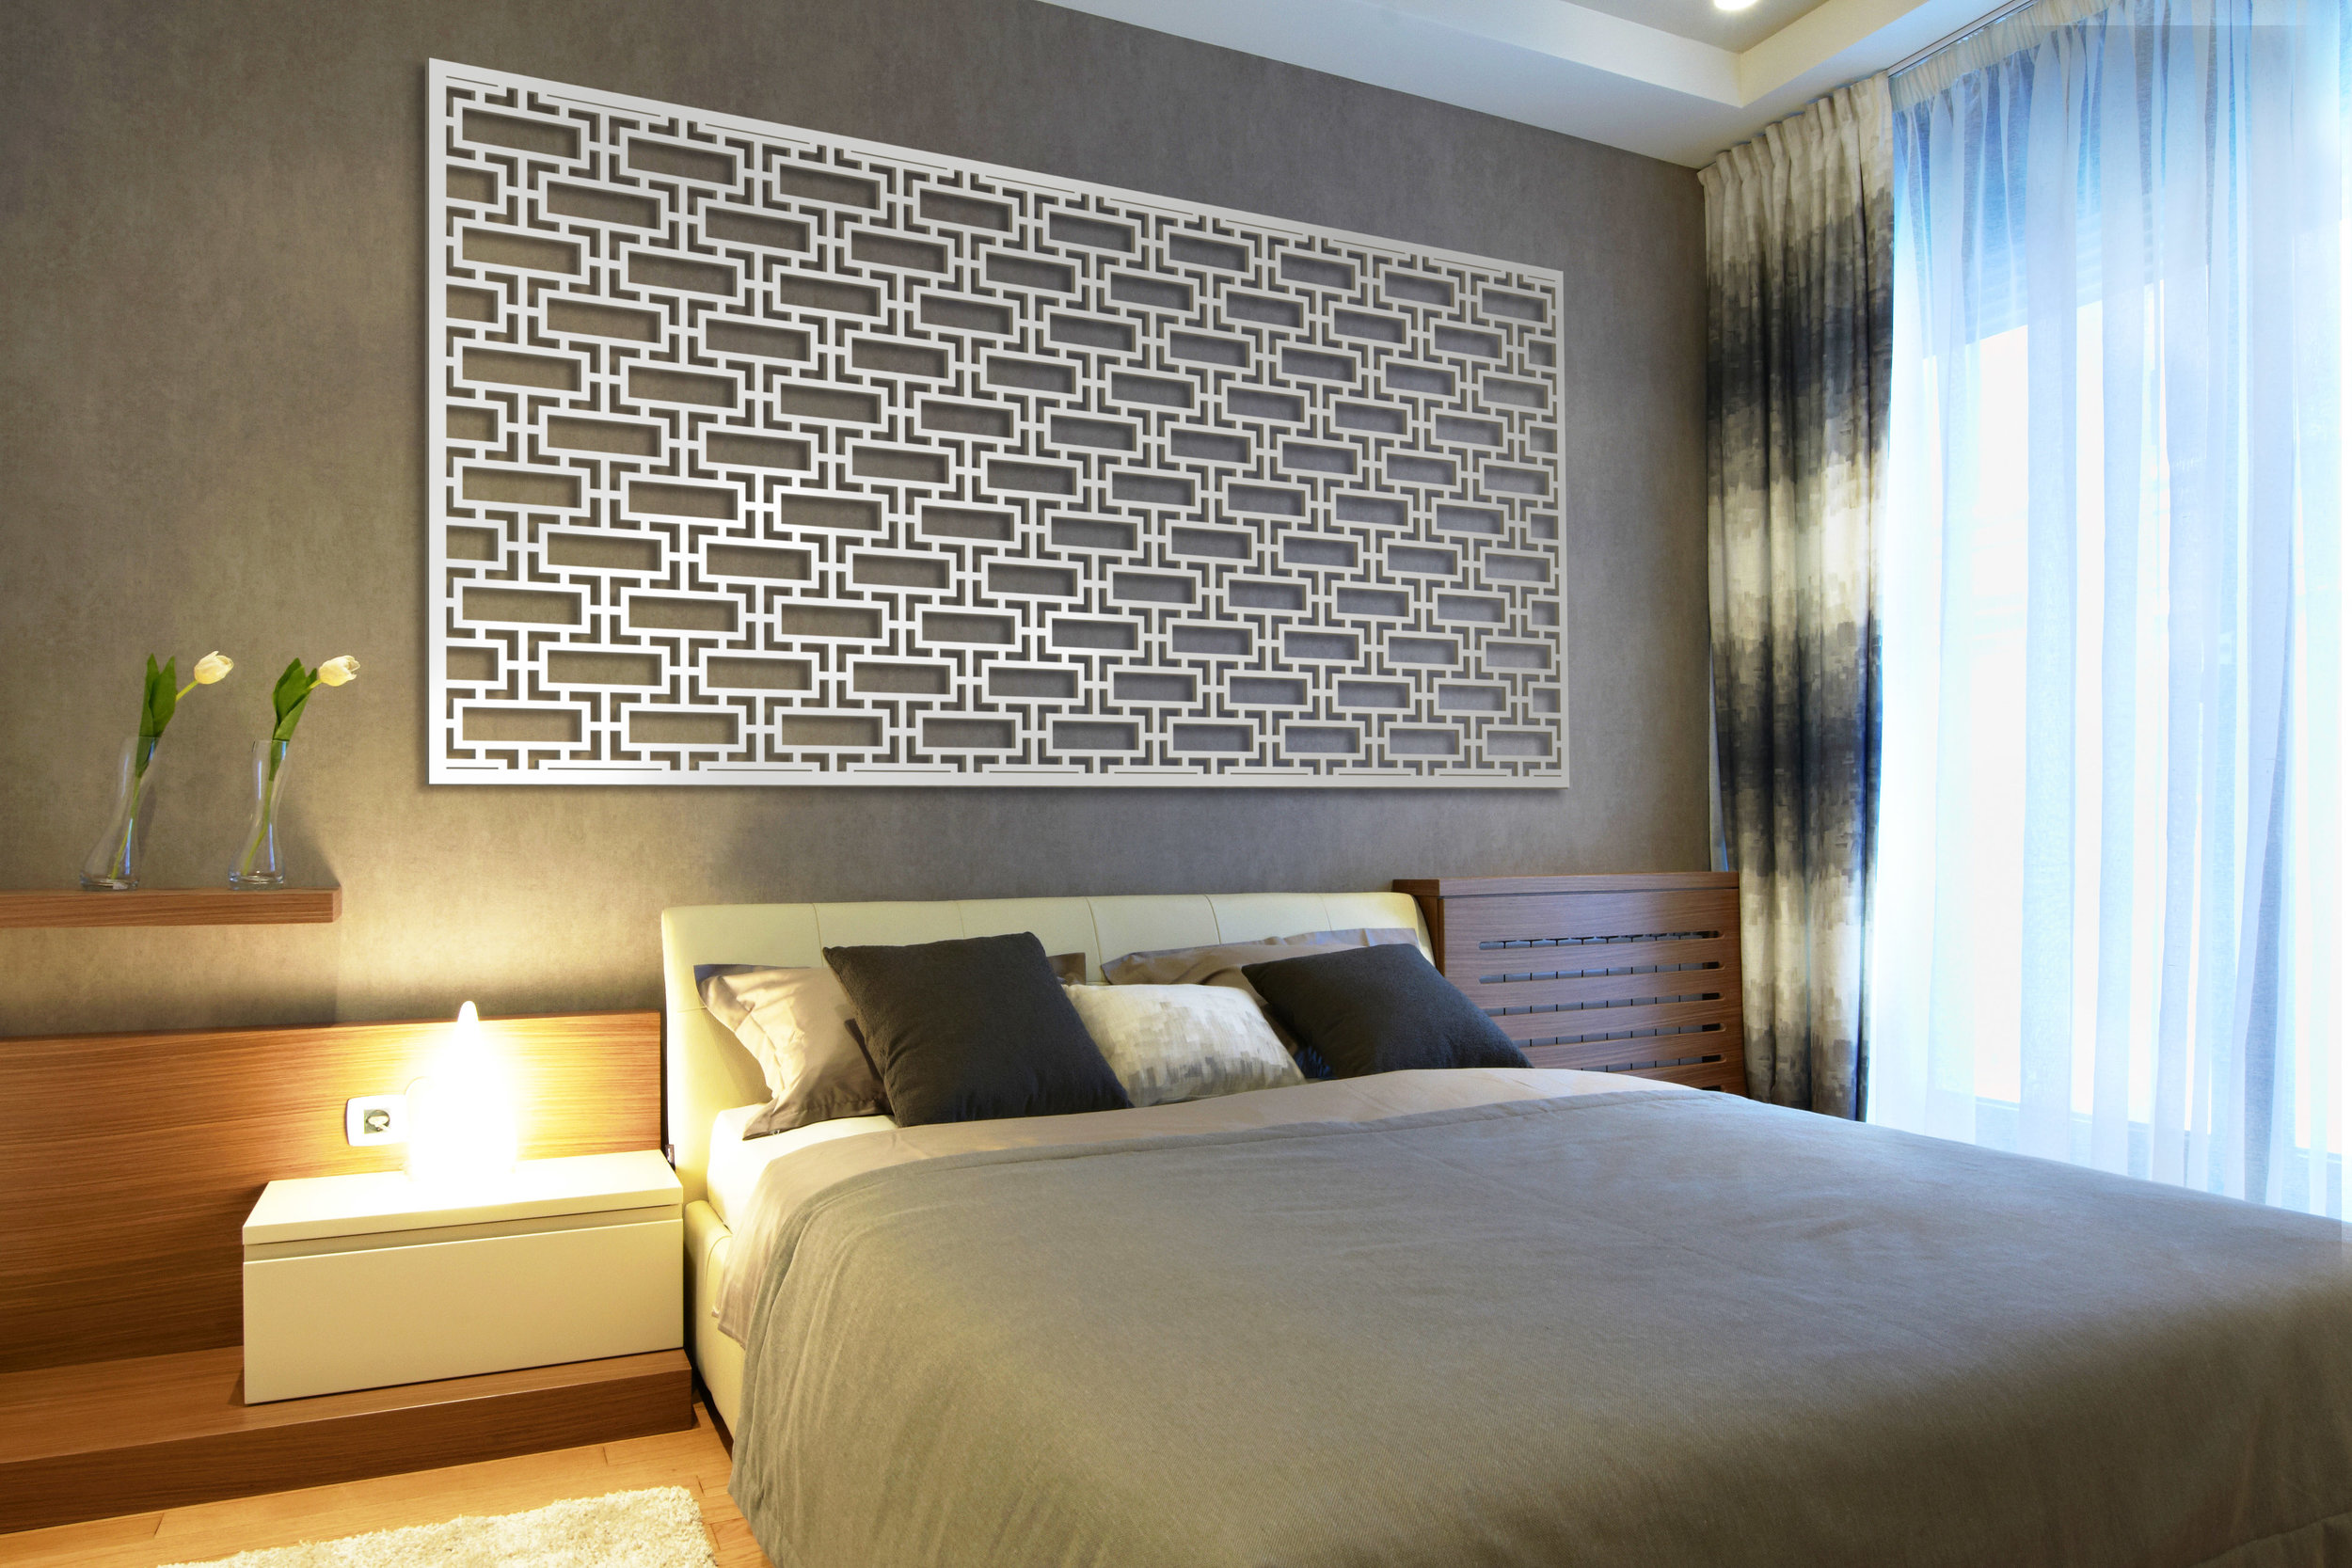 Installation Rendering C   Rectangular Lattice decorative hotel wall panel - painted